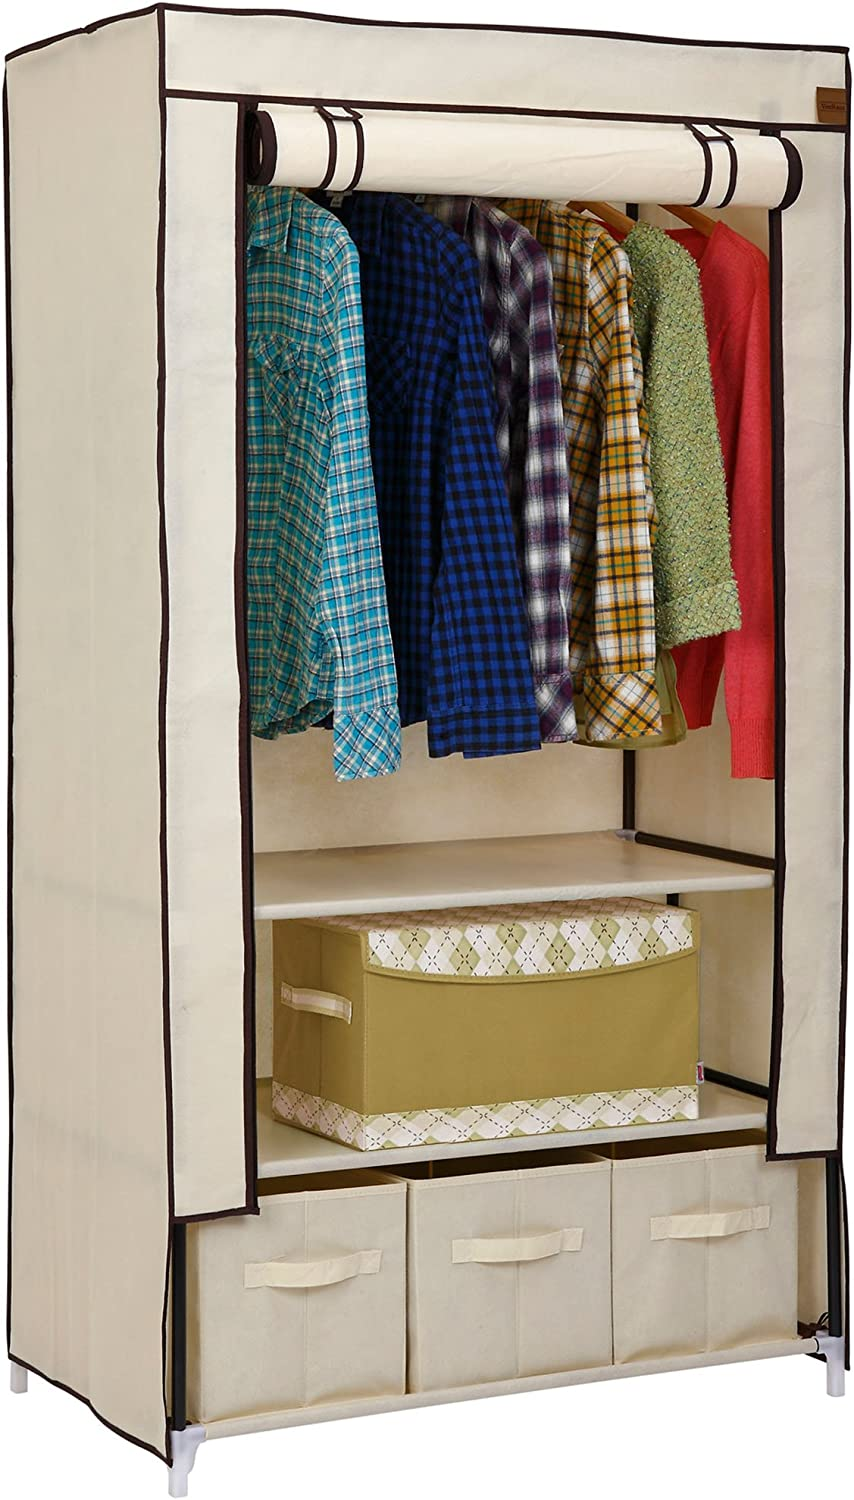 VonHaus Double Fabric Canvas Effect Wardrobe Cupboard – Clothes Storage Organiser With 3 Drawers And Hanging Rail – W88 X D50 X H160cm